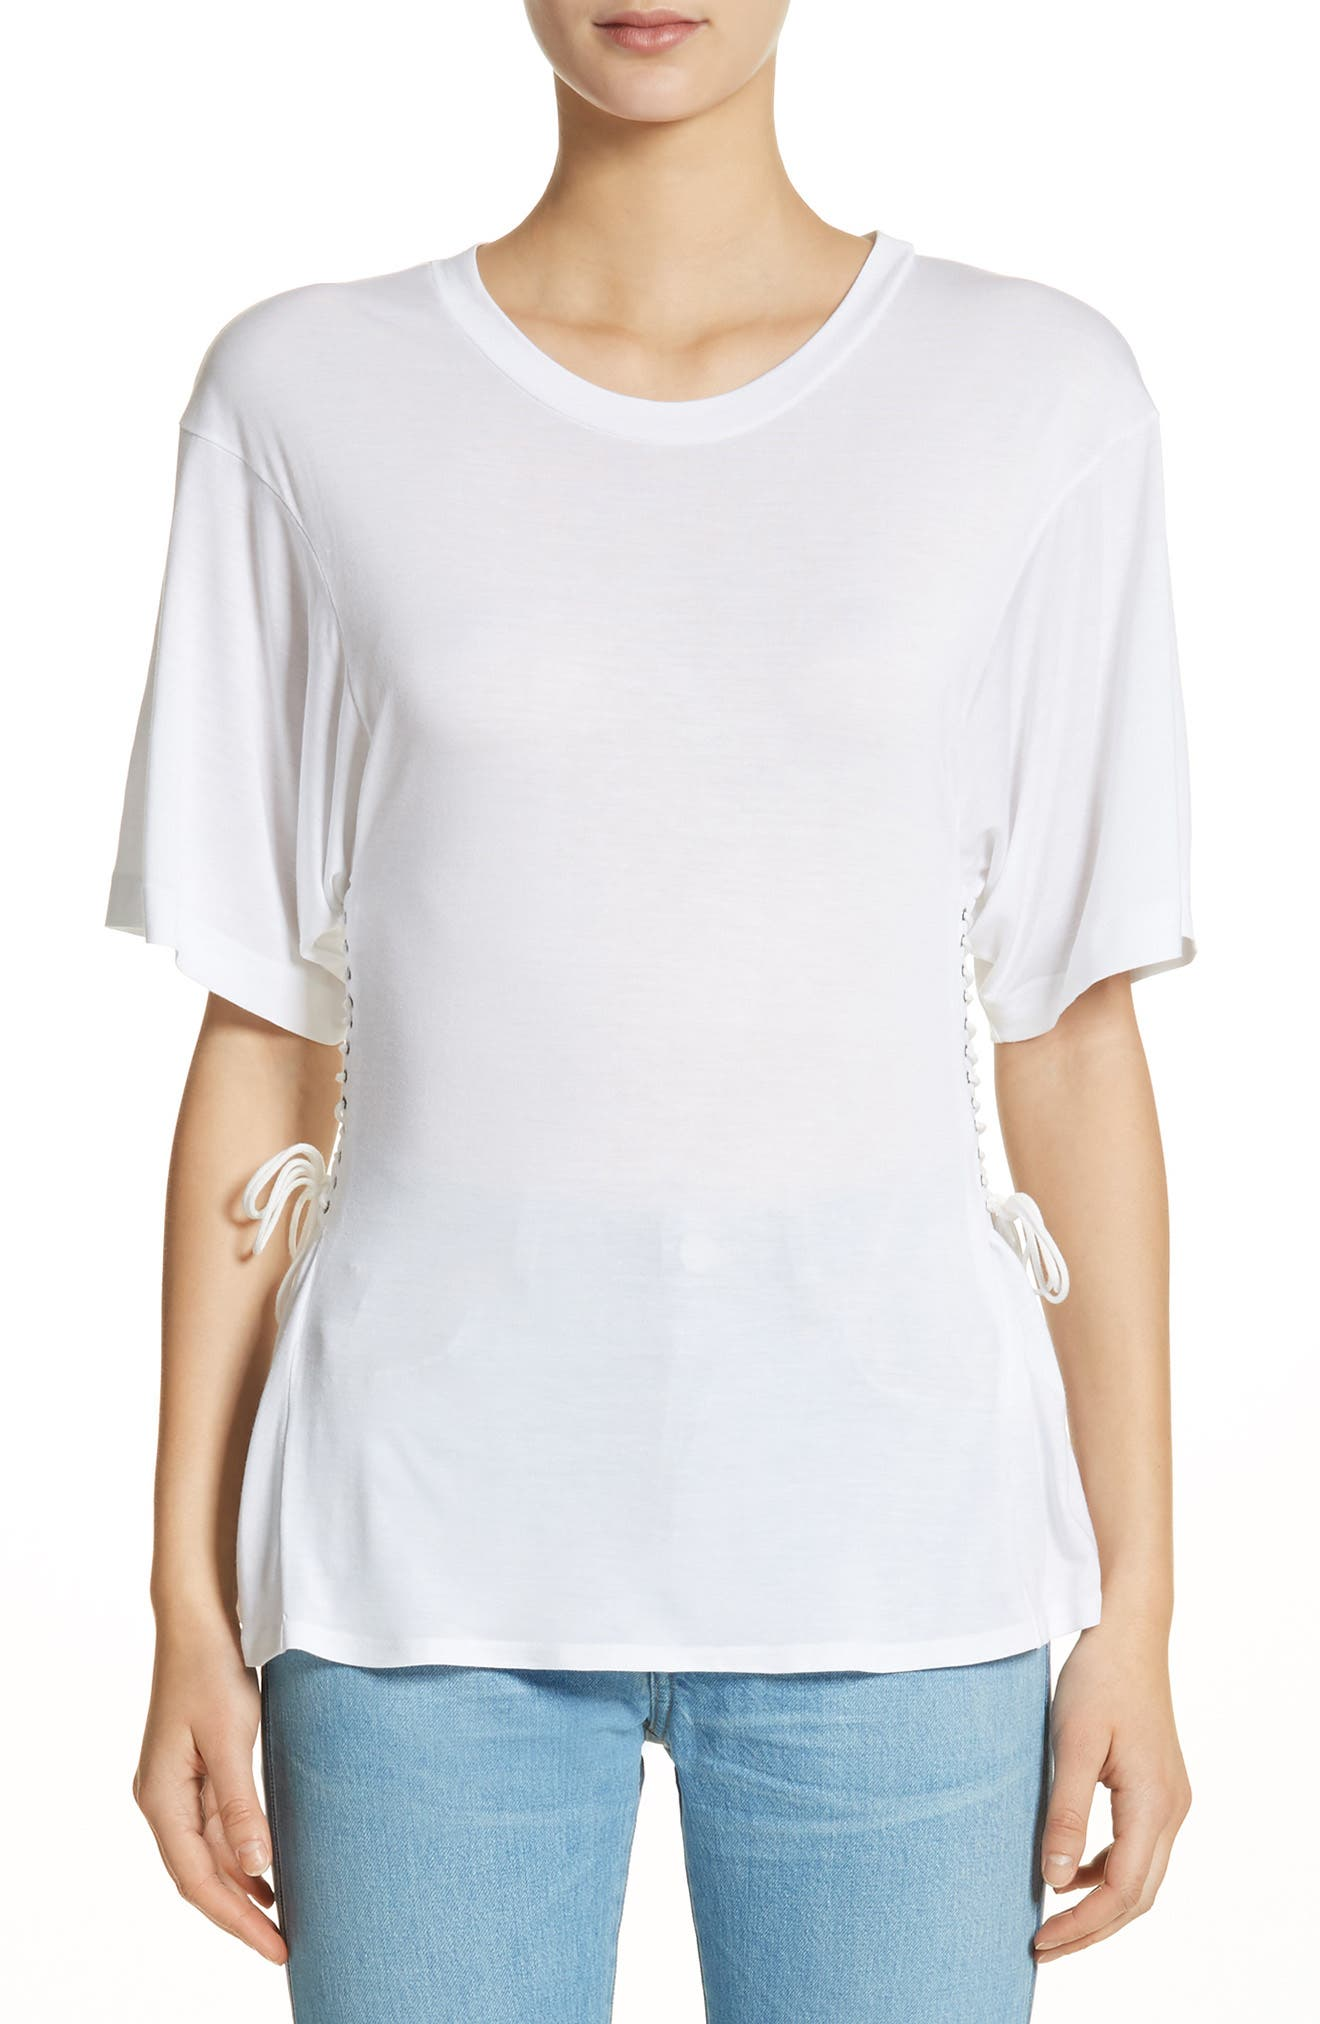 Alternate Image 1 Selected - Jean Atelier Axel Lace-Up Tee